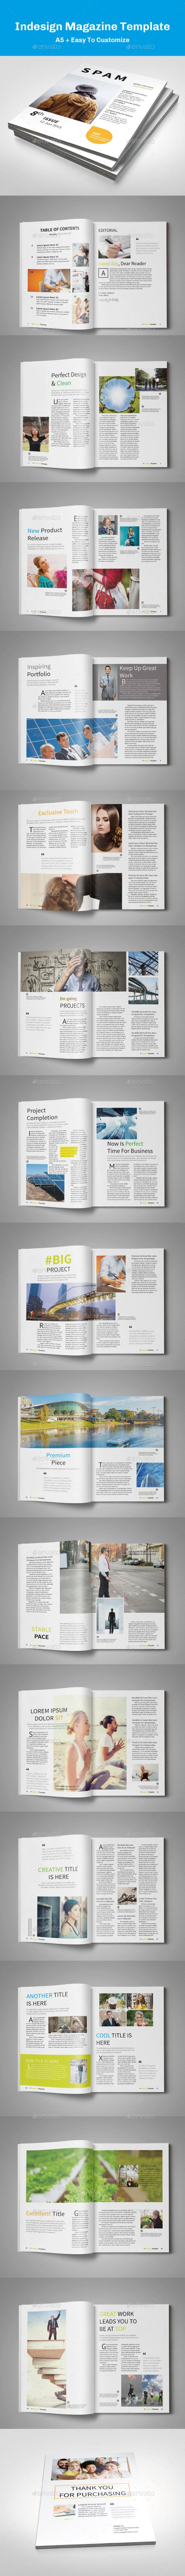 15 best A5 and Digest InDesign Magazine Templates images on ...